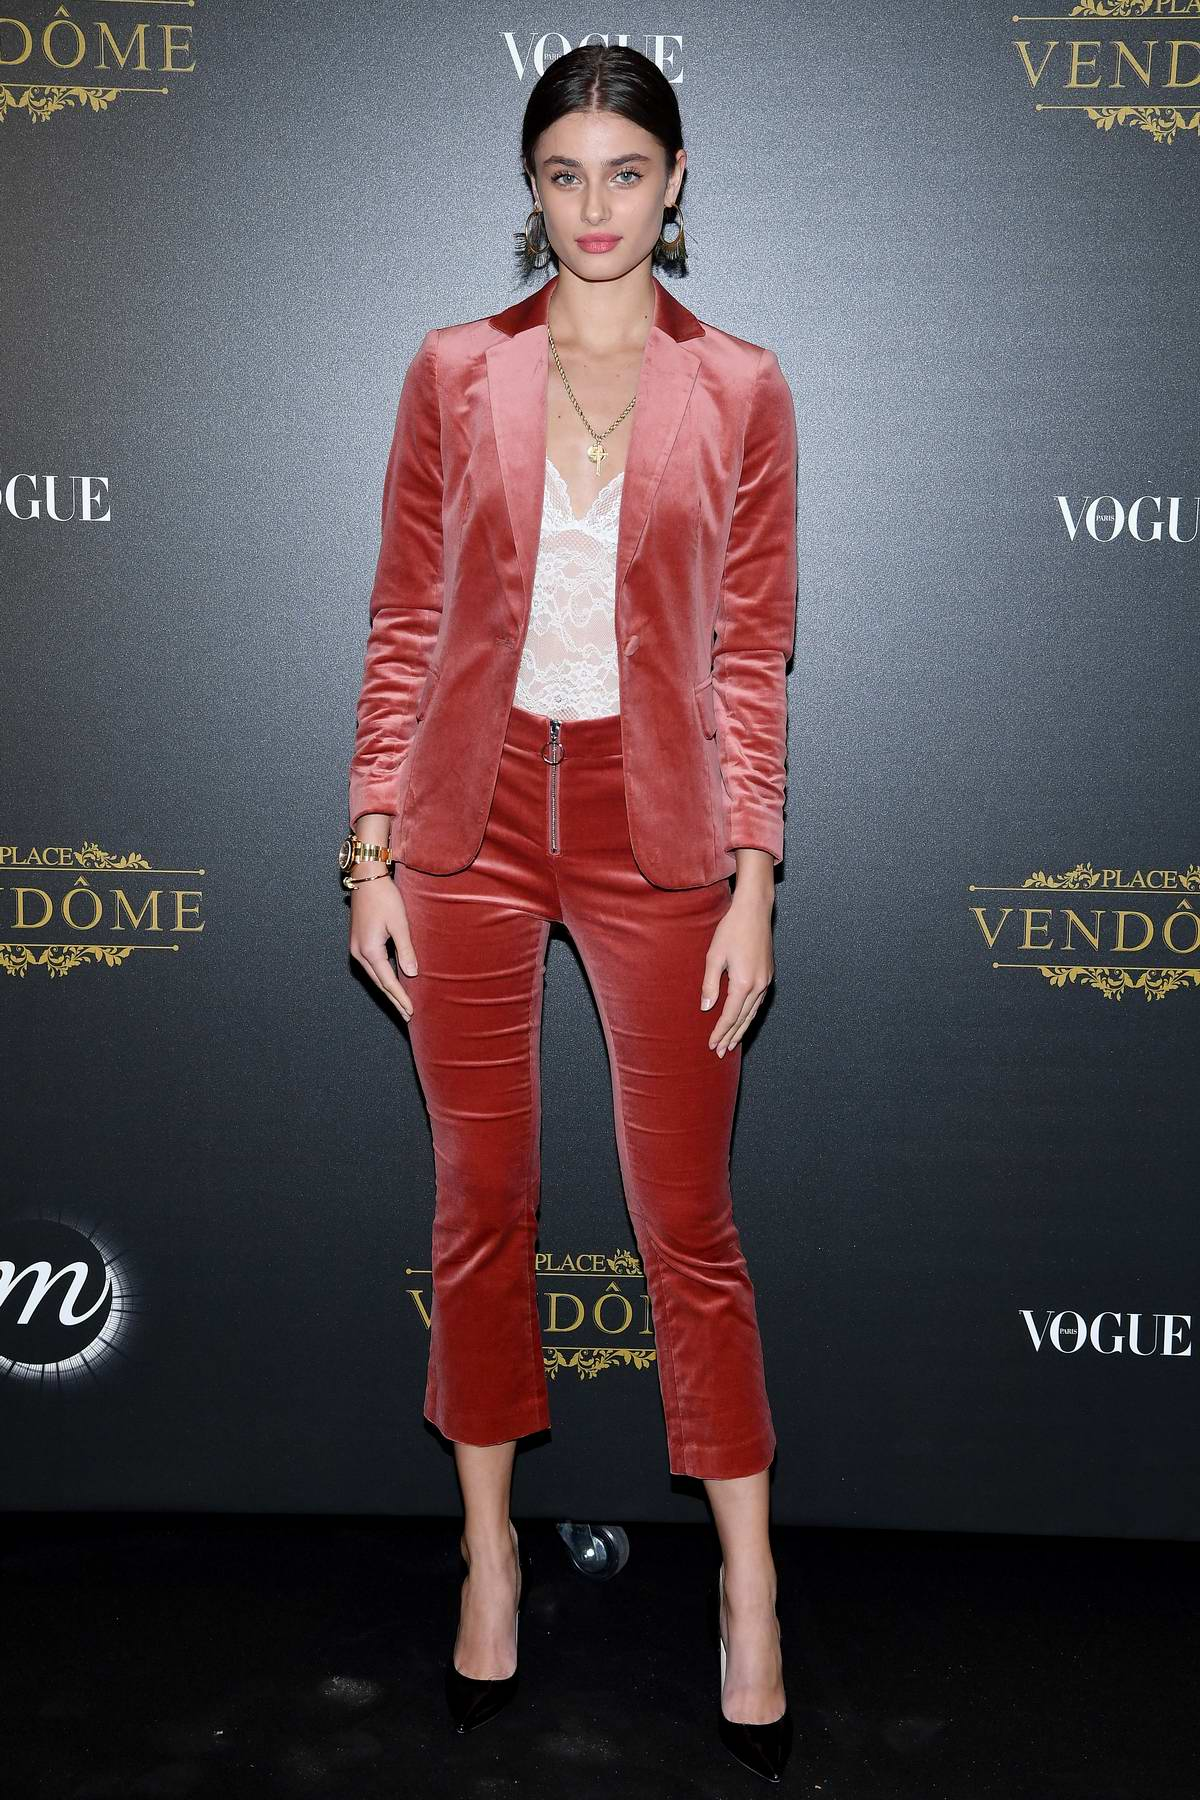 Taylor Hill attends the Vogue x Irving Penn party during Paris Fashion Week SS 2020 in Paris, France